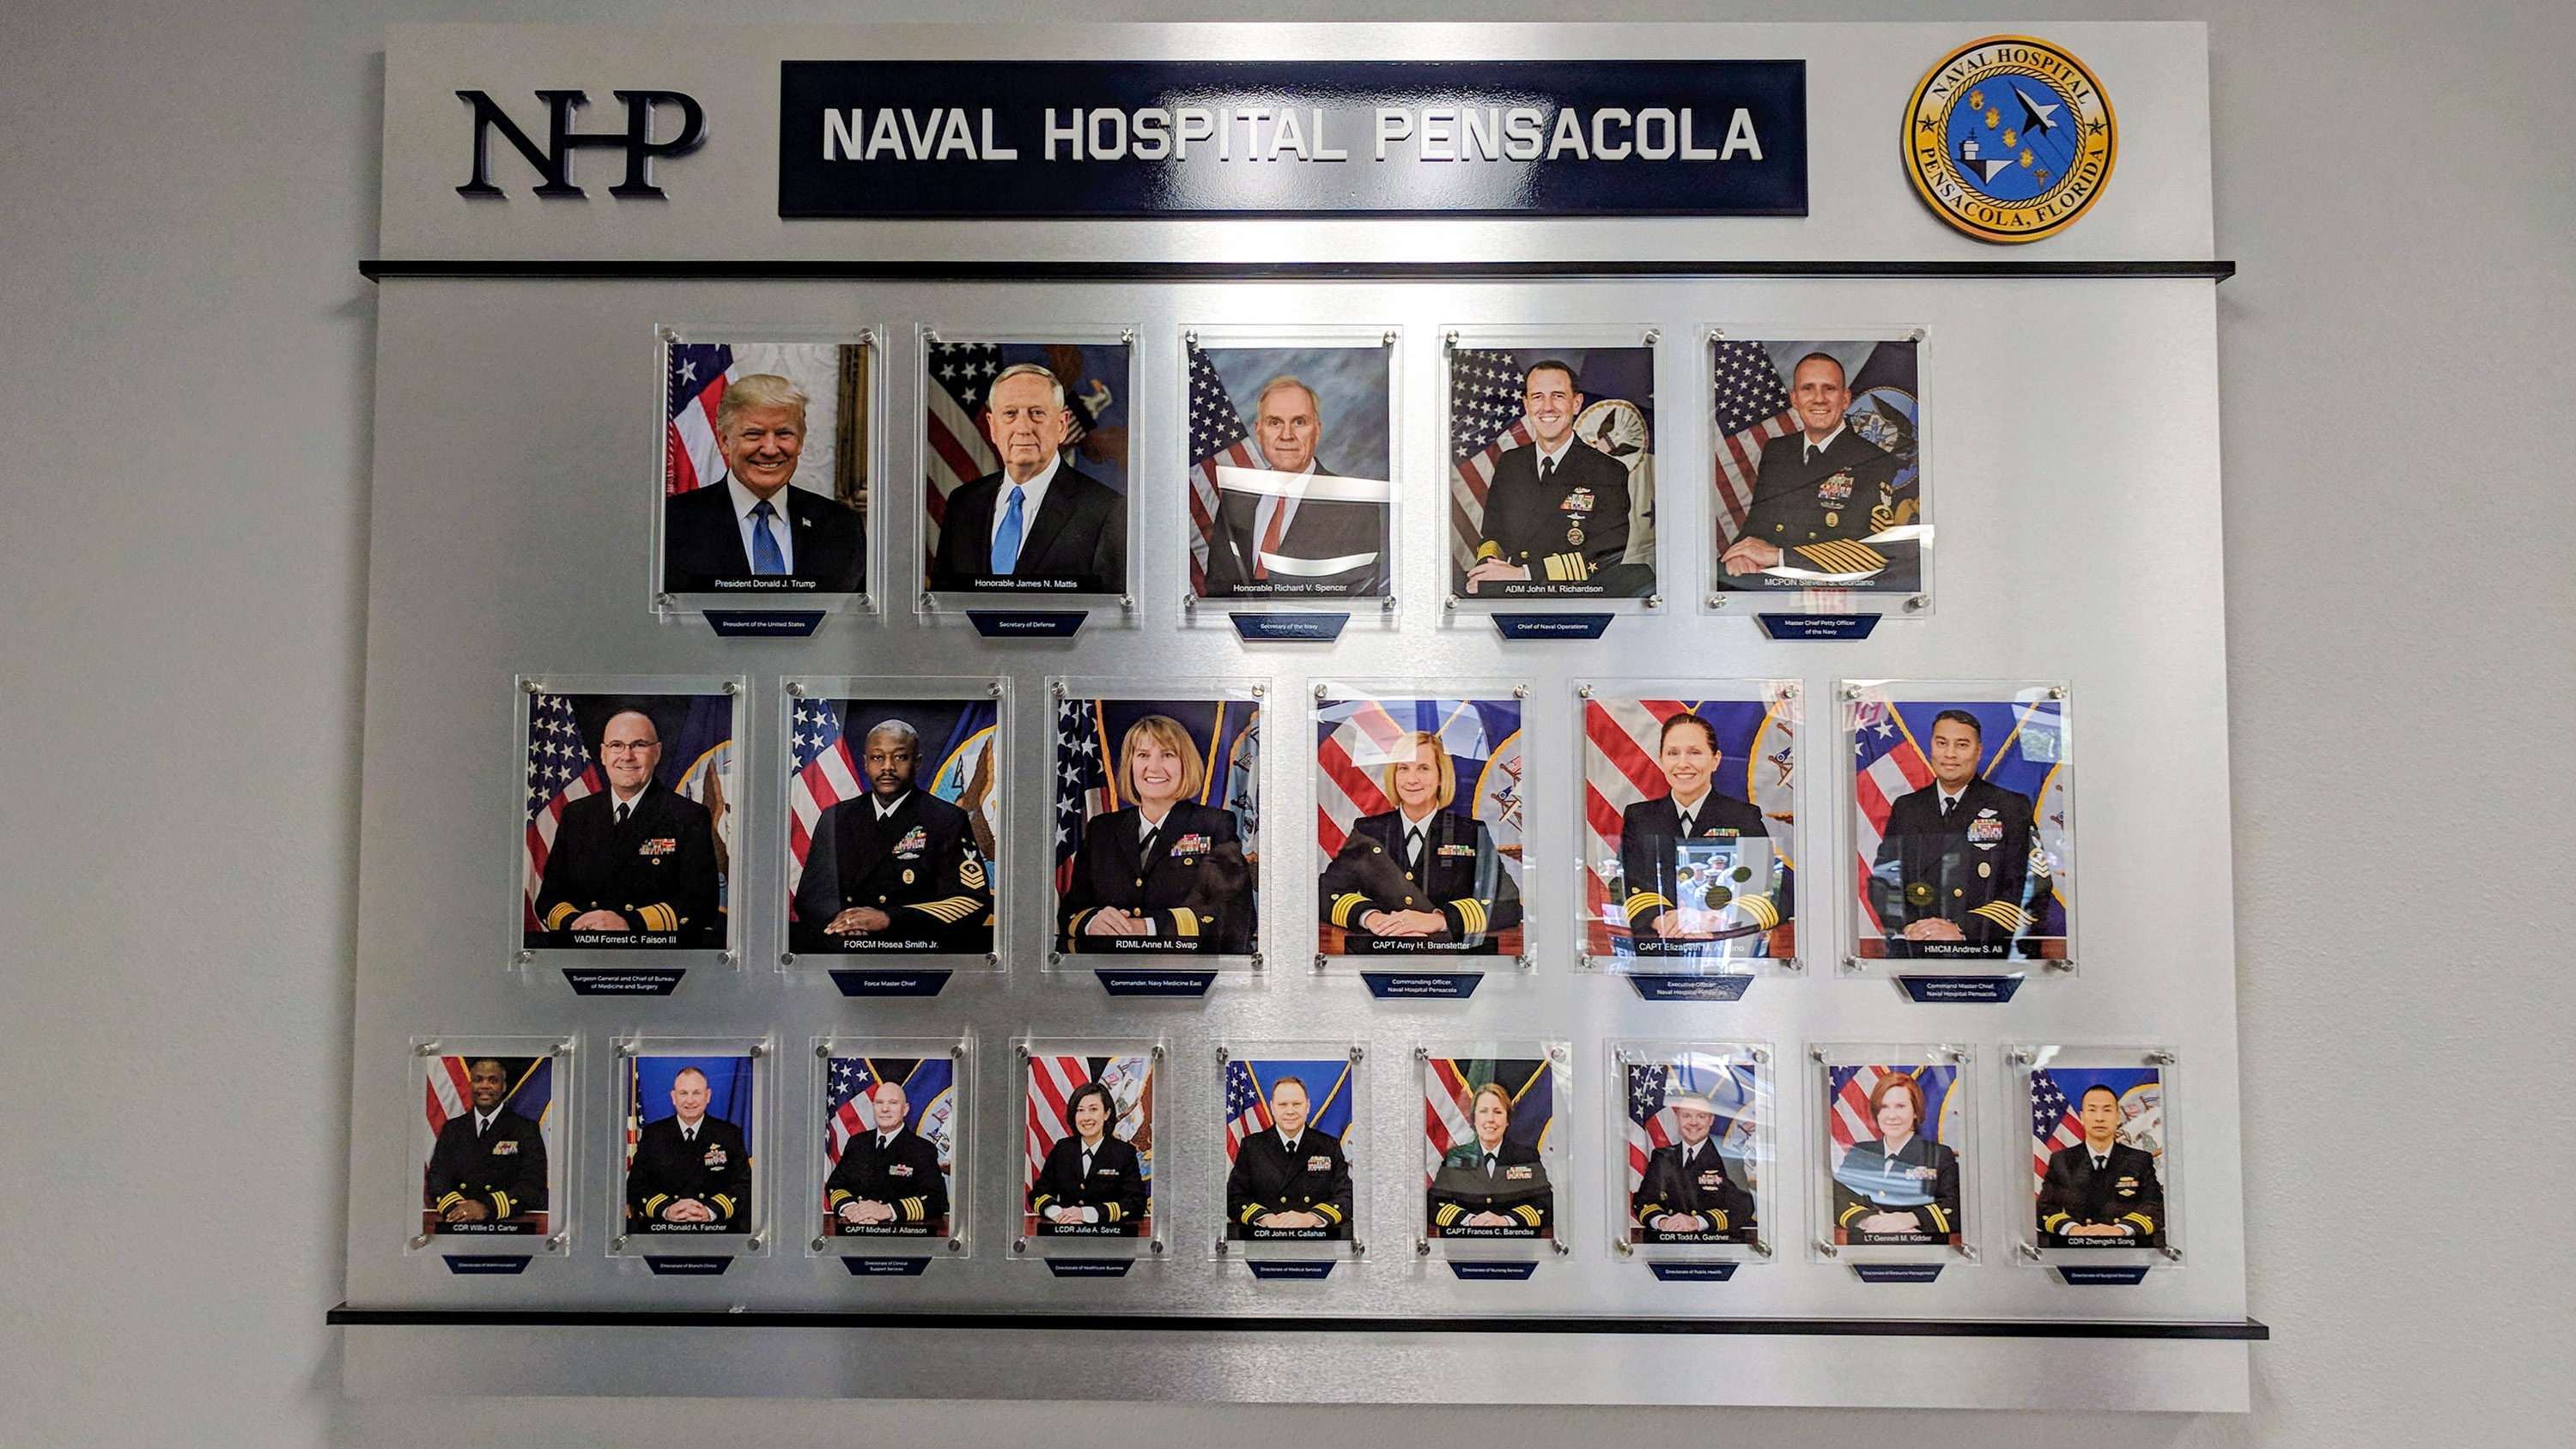 Recognition Display for Naval Hospital Pensacola